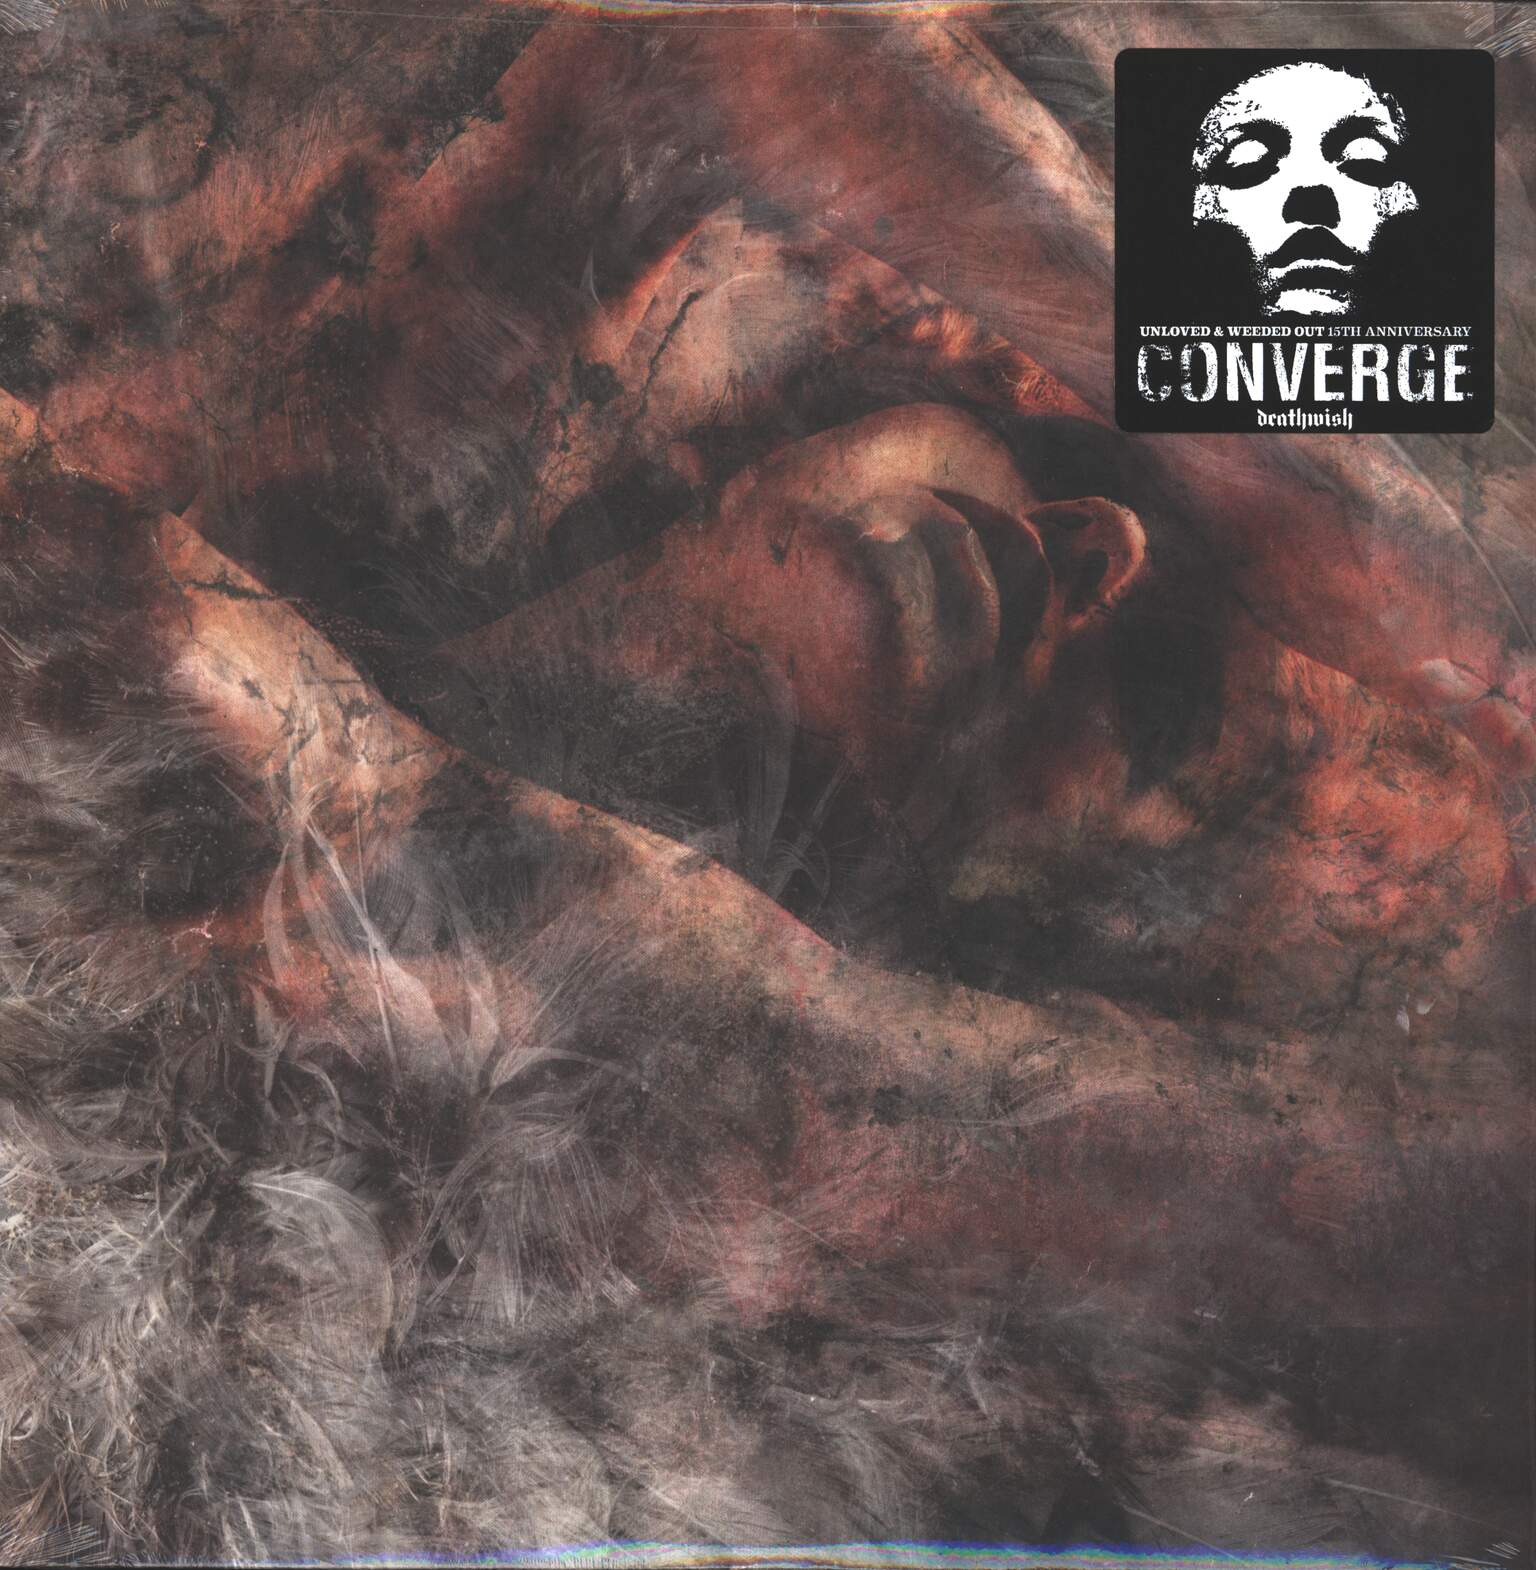 Converge: Unloved And Weeded Out, 1×LP (Vinyl)